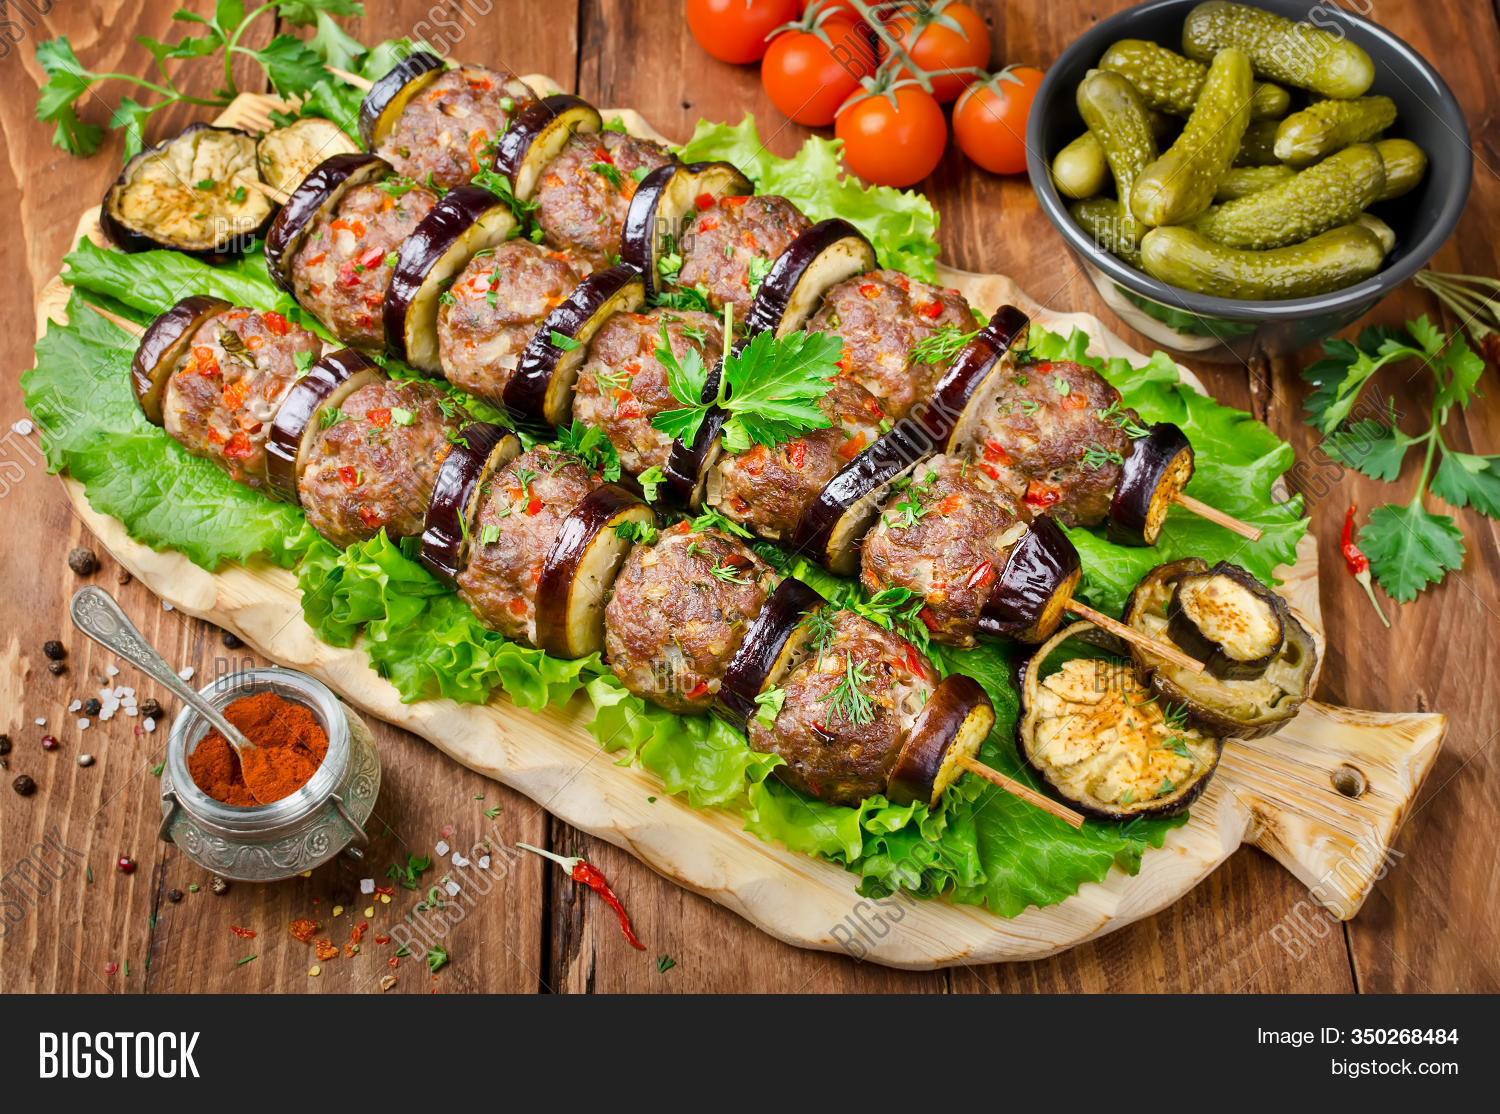 Turkish Kebab Eggplant Image Photo Free Trial Bigstock